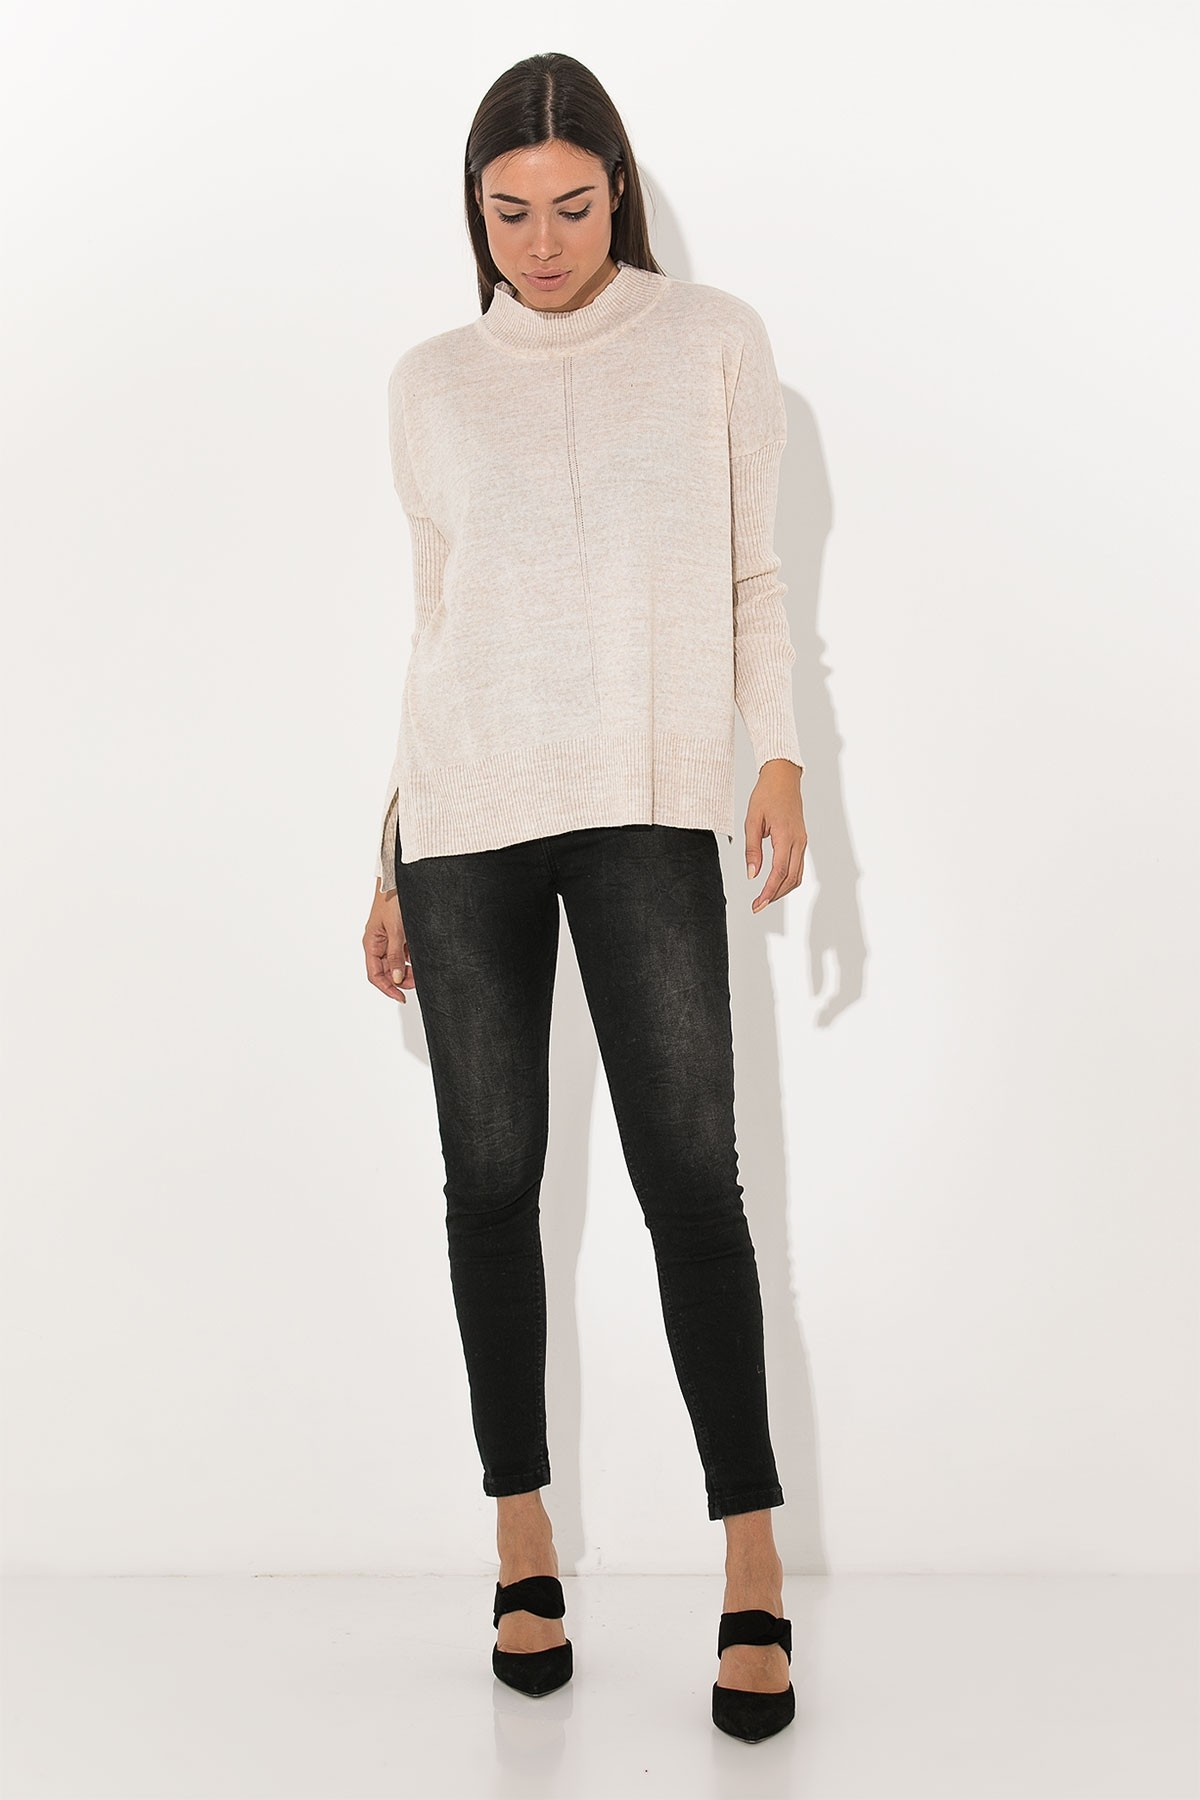 BEIGE BASIC KNIT TOP